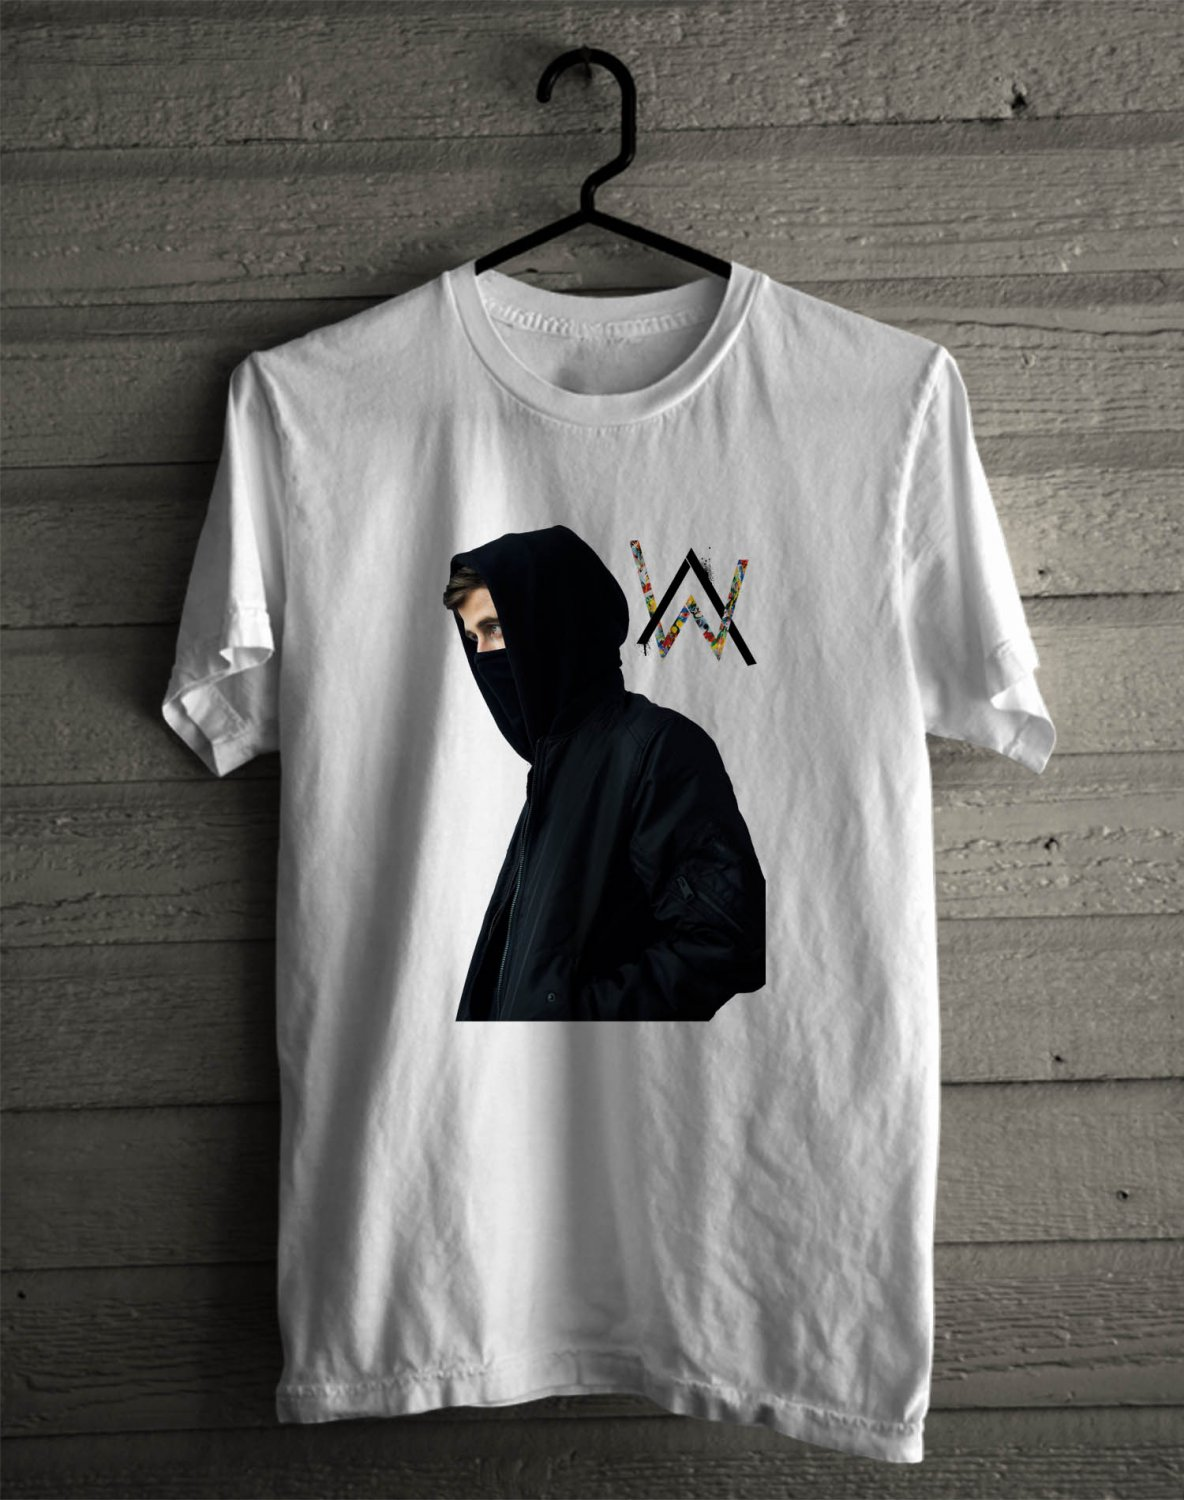 Alan Walker Summer Tour 2017 White Tee's Front Side by Complexart z1